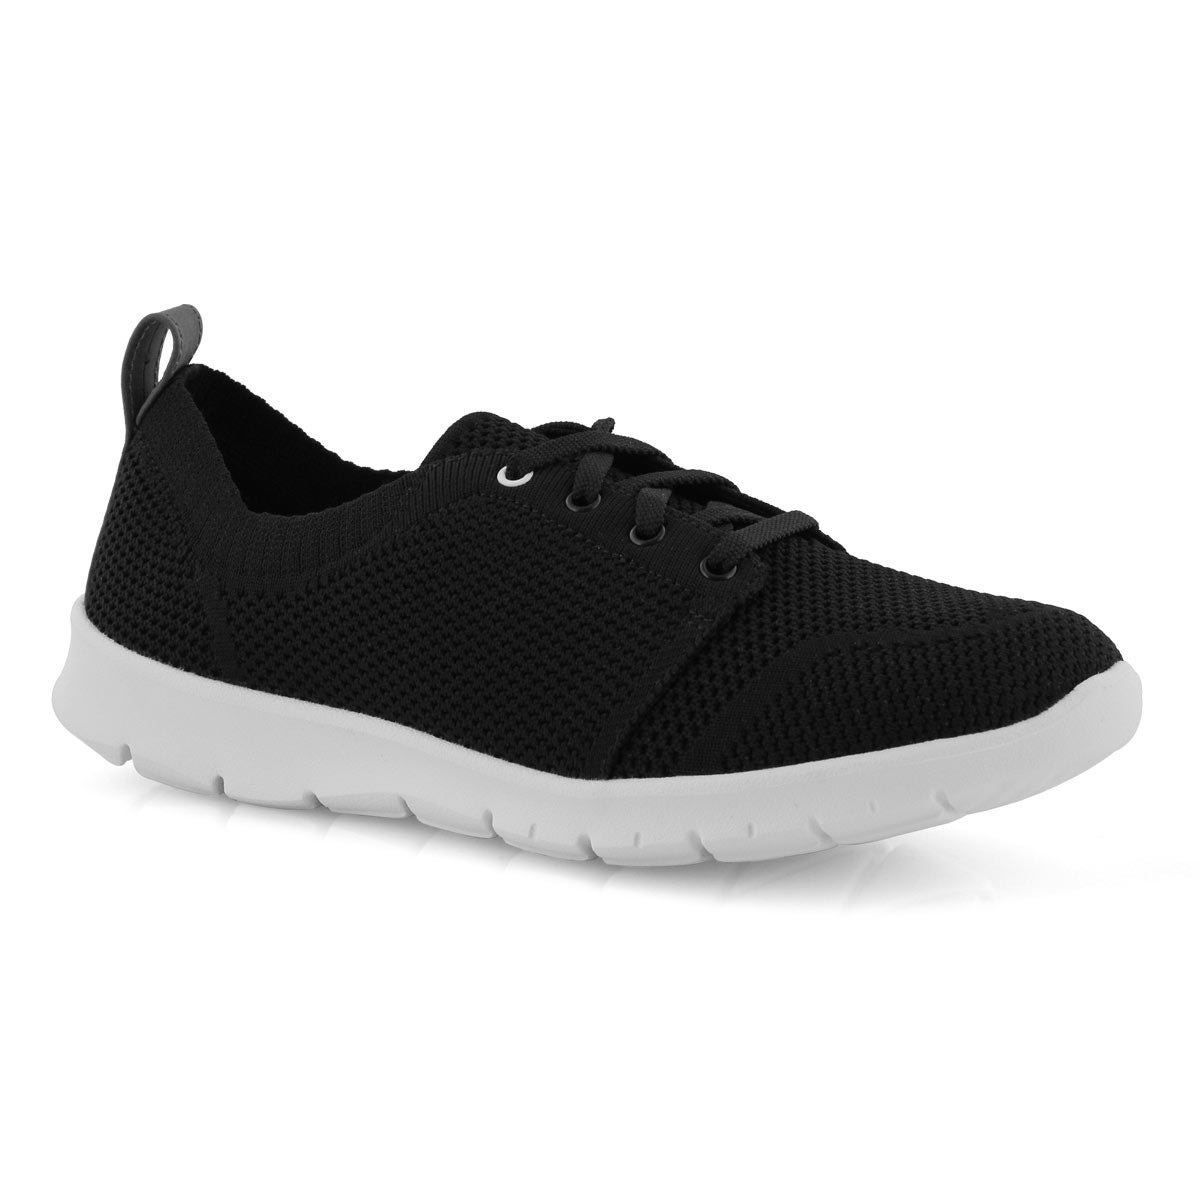 Lds Step Allena Sun blk casual shoe-wide